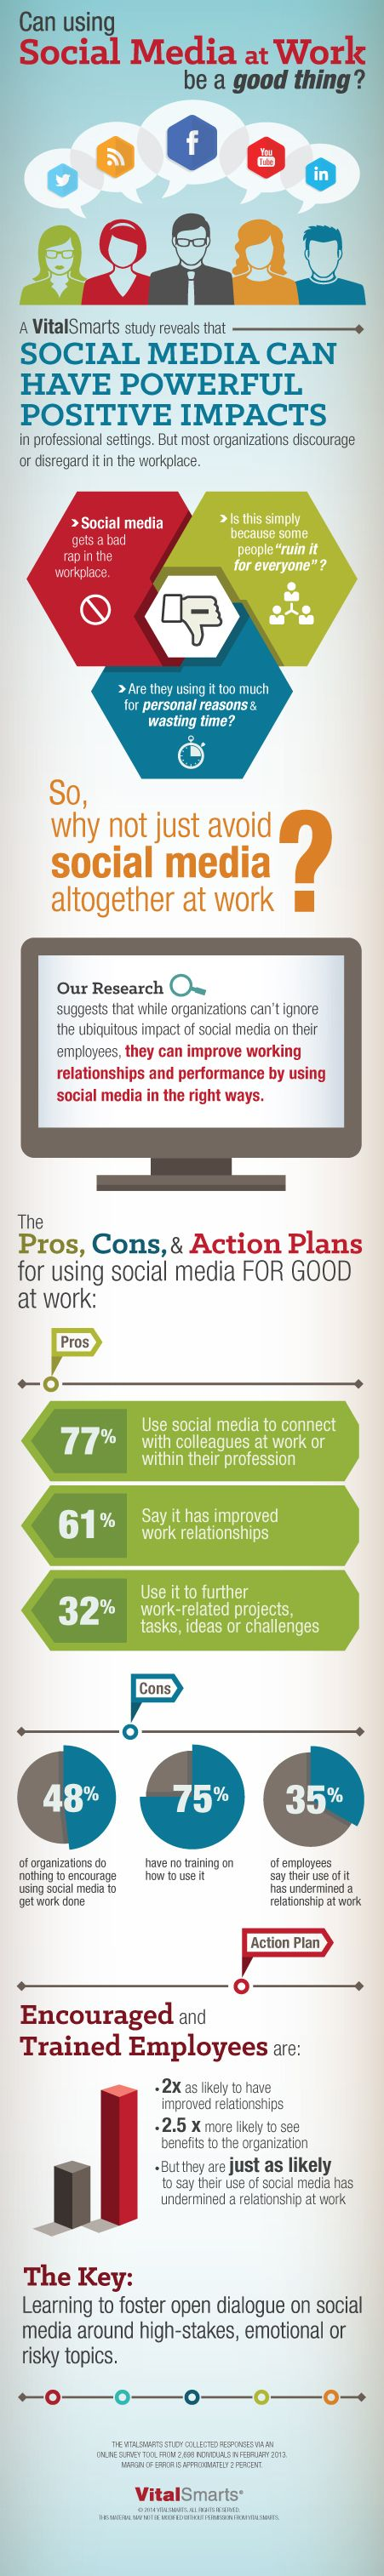 48% of companies don't encourage social media networking - infographic